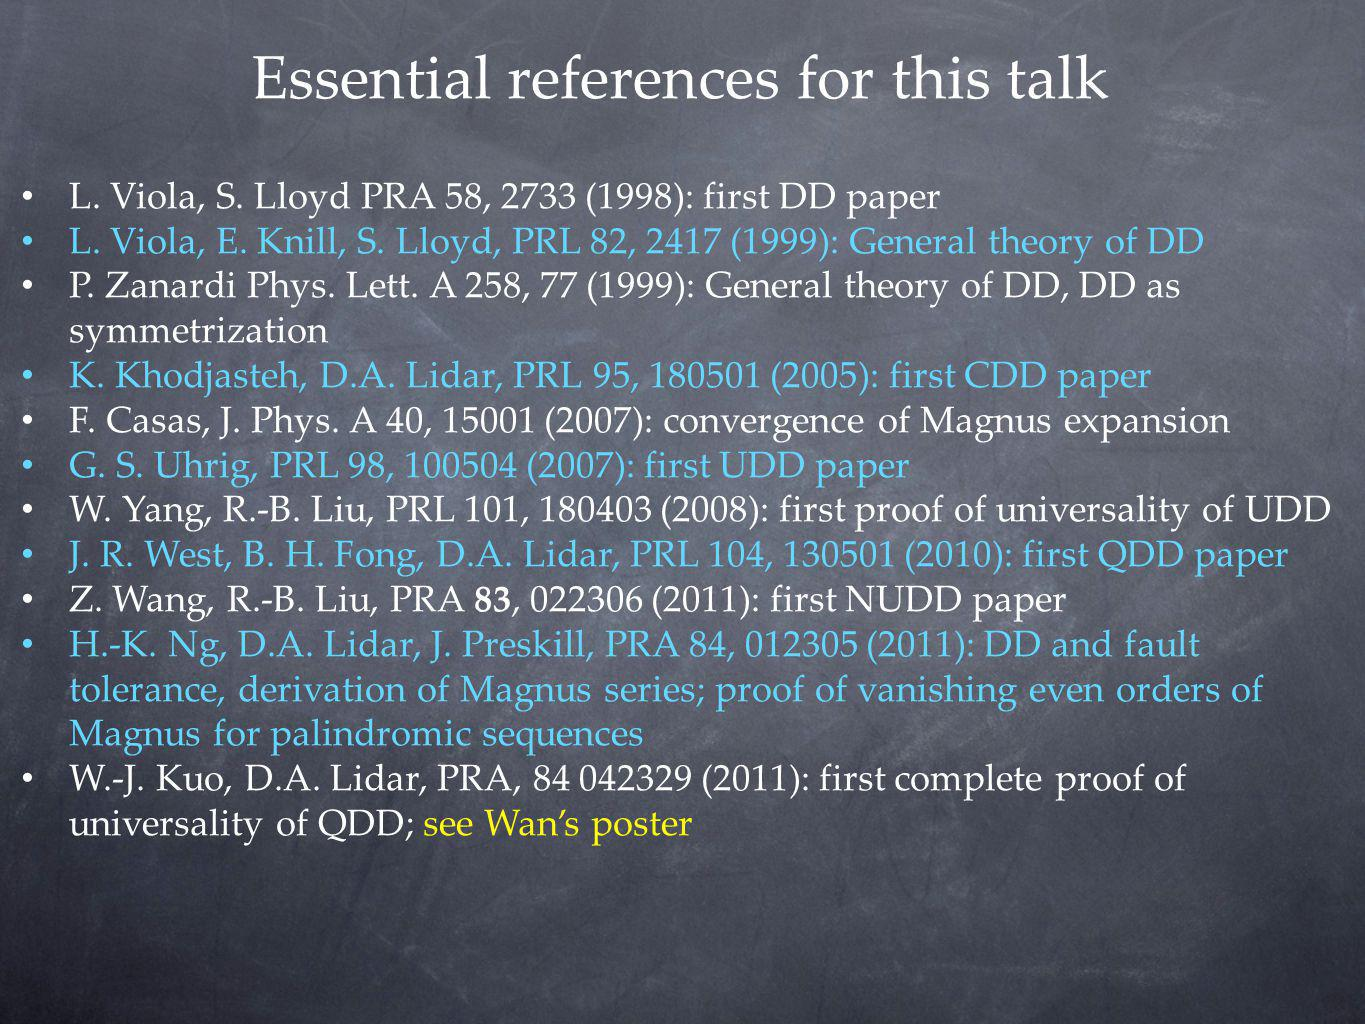 Essential references for this talk